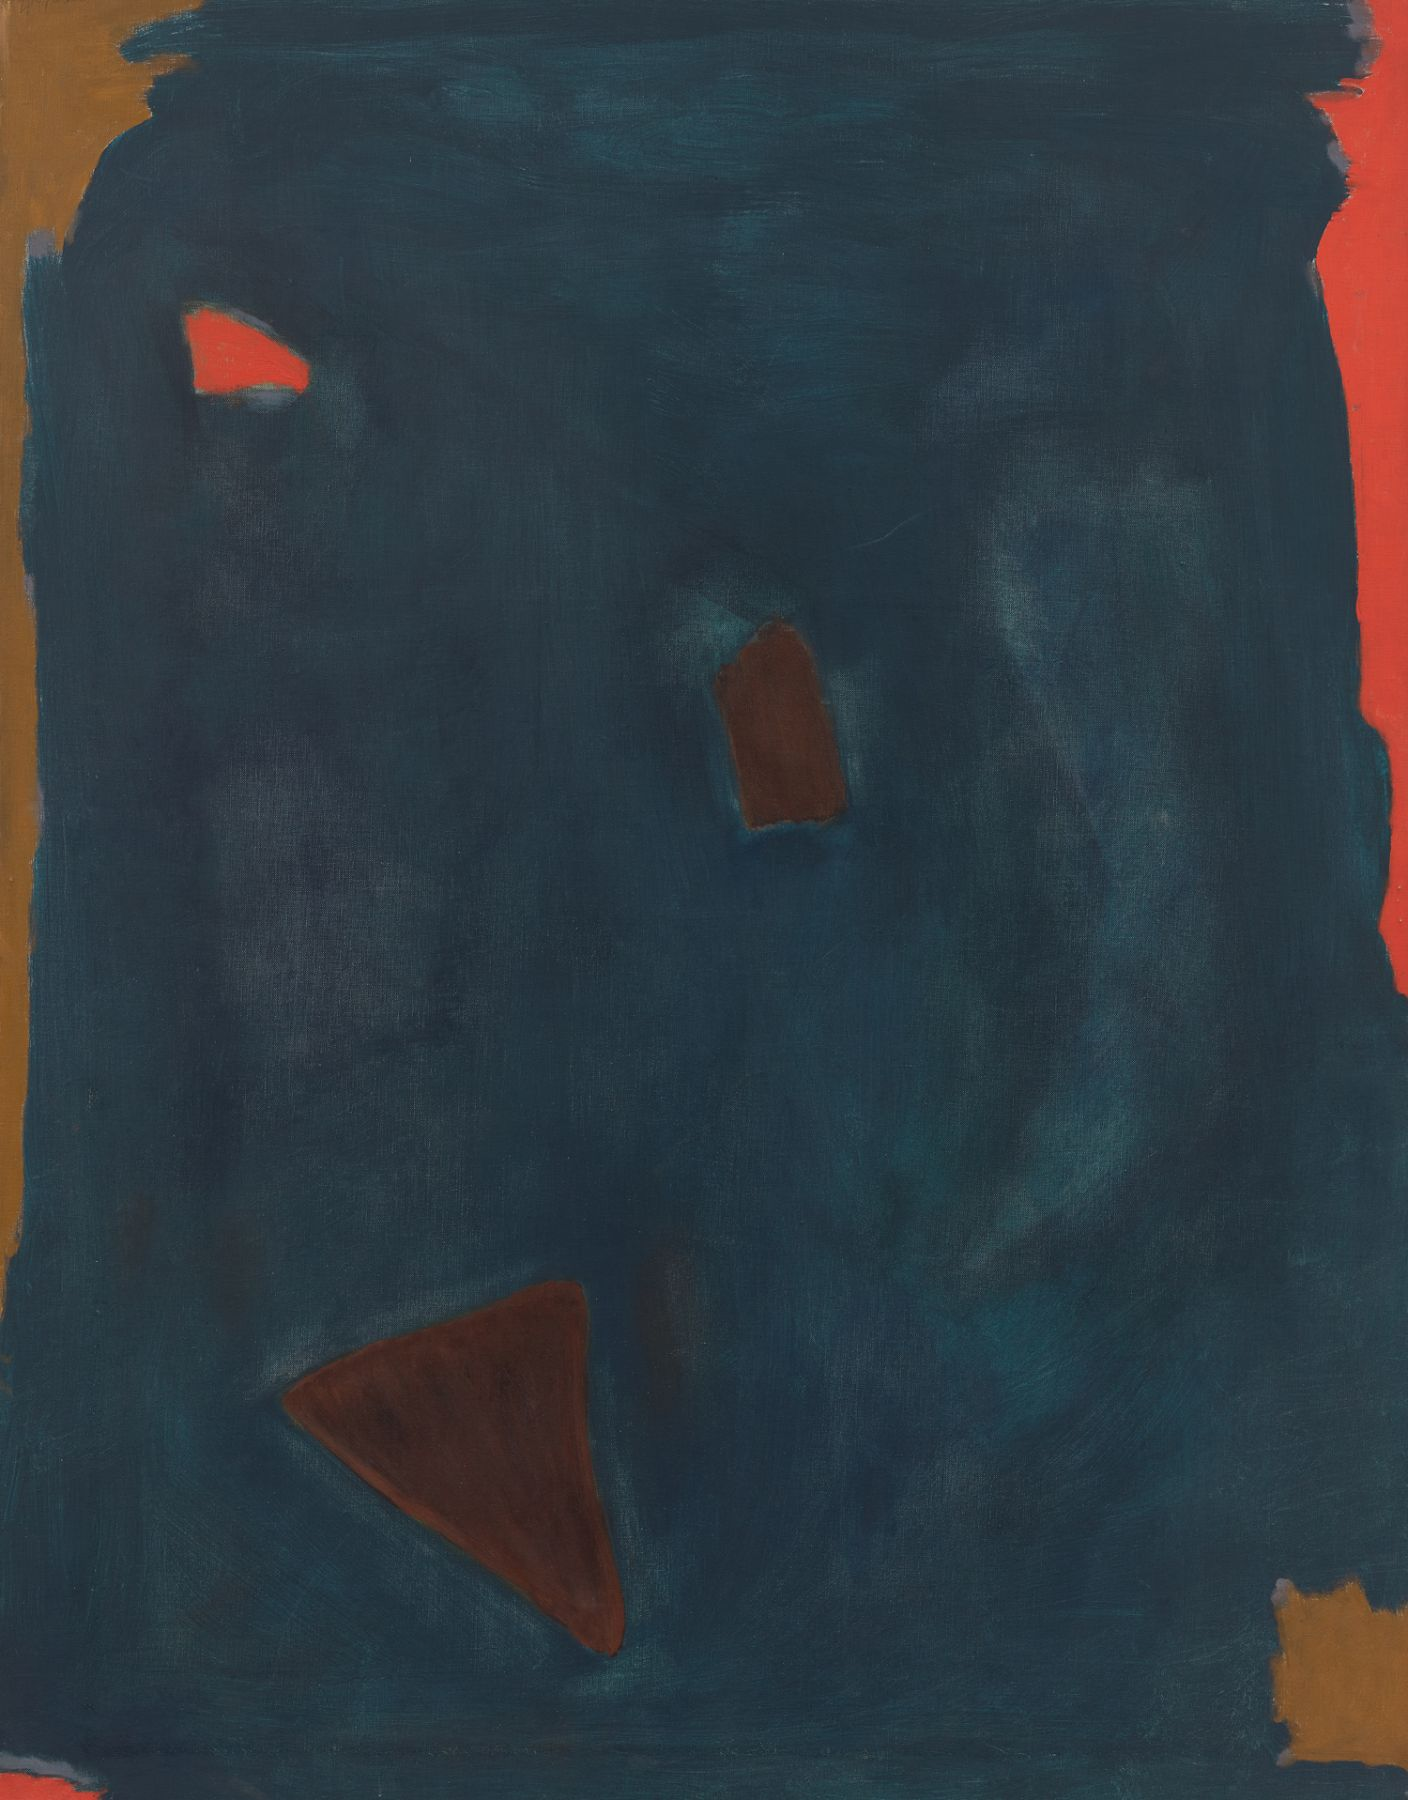 Betty Parsons, Night Forms, 1960